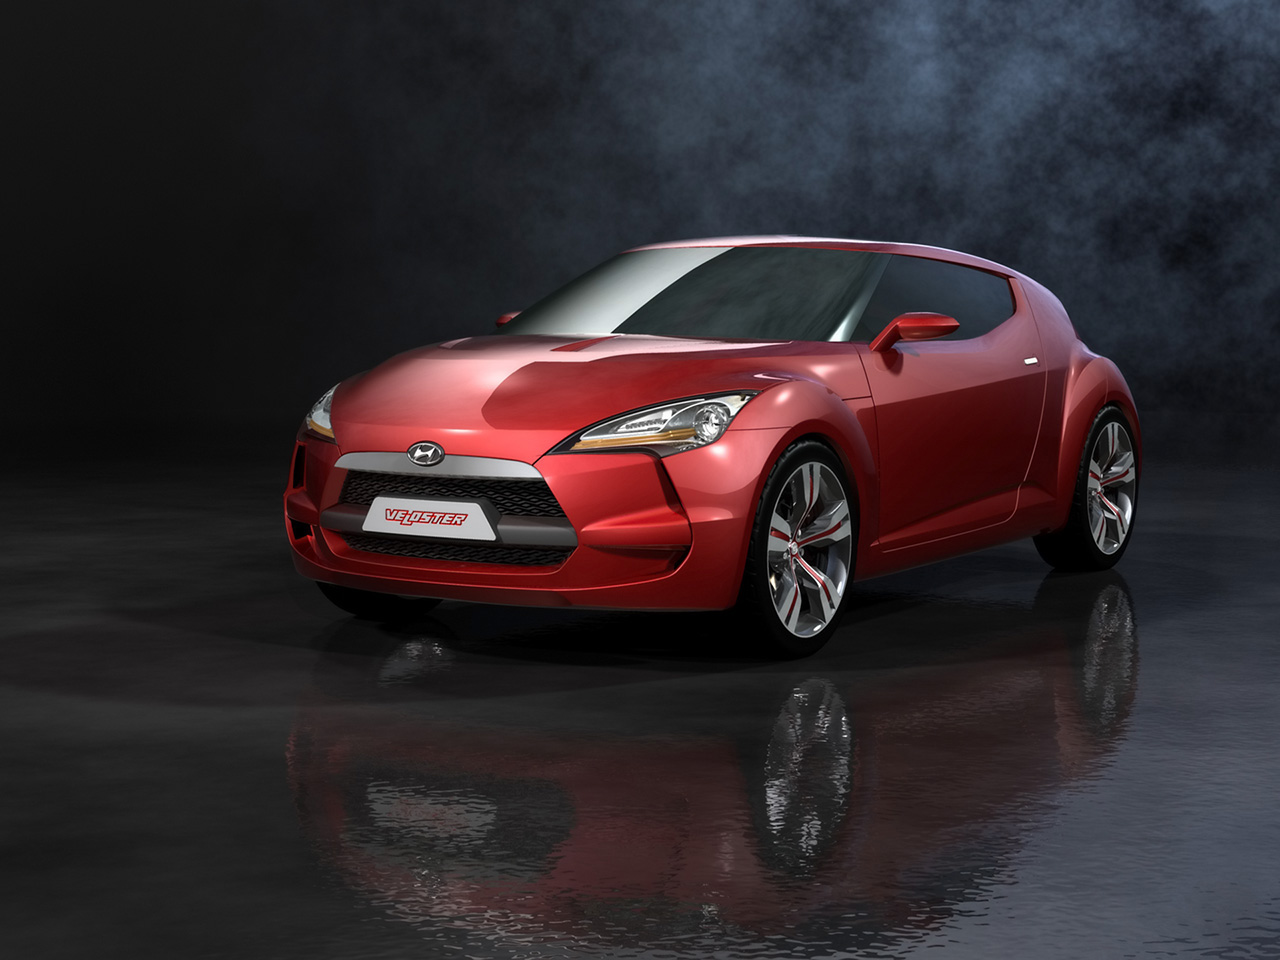 hyundai veloster concept 3 2011 Hyundai Veloster Concept   Photos, Specifications, Price, Reviews